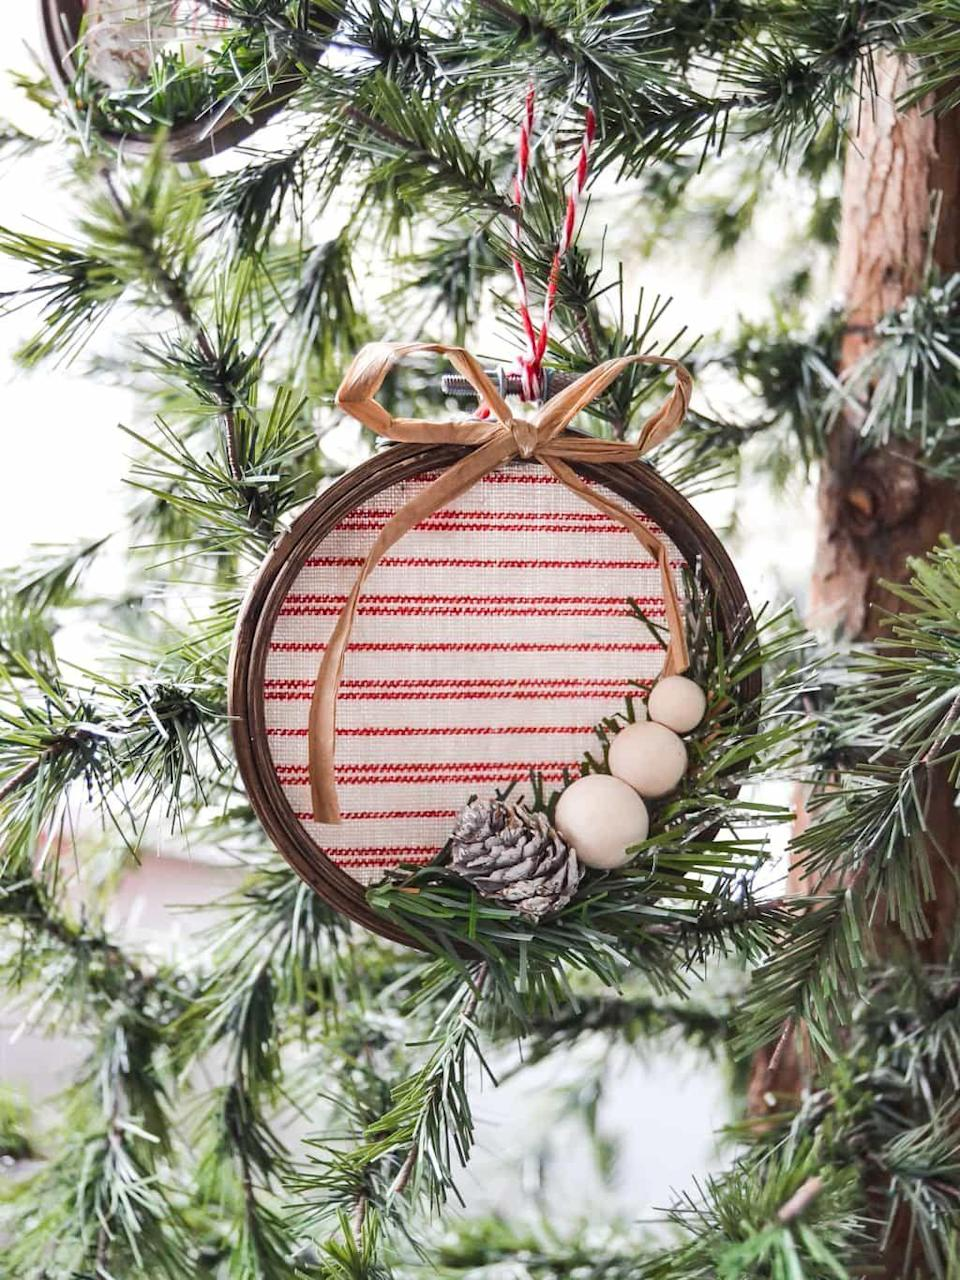 """<p>These embroidery hoop Christmas ornaments will look perfect on your tree, but they're so beautiful that we recommend making a few extra and hanging 'em on doorknobs and windows.</p><p><strong>Get the tutorial at <a href=""""https://mycreativedays.porch.com/diy-embroidery-hoop-christmas-ornament/"""" rel=""""nofollow noopener"""" target=""""_blank"""" data-ylk=""""slk:My Creative Days"""" class=""""link rapid-noclick-resp"""">My Creative Days</a>.</strong></p><p><a class=""""link rapid-noclick-resp"""" href=""""https://www.amazon.com/Wooden-Embroidery-Wholesale-Pieces-Darice/dp/B01M3MPL8J/?tag=syn-yahoo-20&ascsubtag=%5Bartid%7C10050.g.1070%5Bsrc%7Cyahoo-us"""" rel=""""nofollow noopener"""" target=""""_blank"""" data-ylk=""""slk:SHOP EMBROIDERY HOOPS"""">SHOP EMBROIDERY HOOPS</a></p>"""